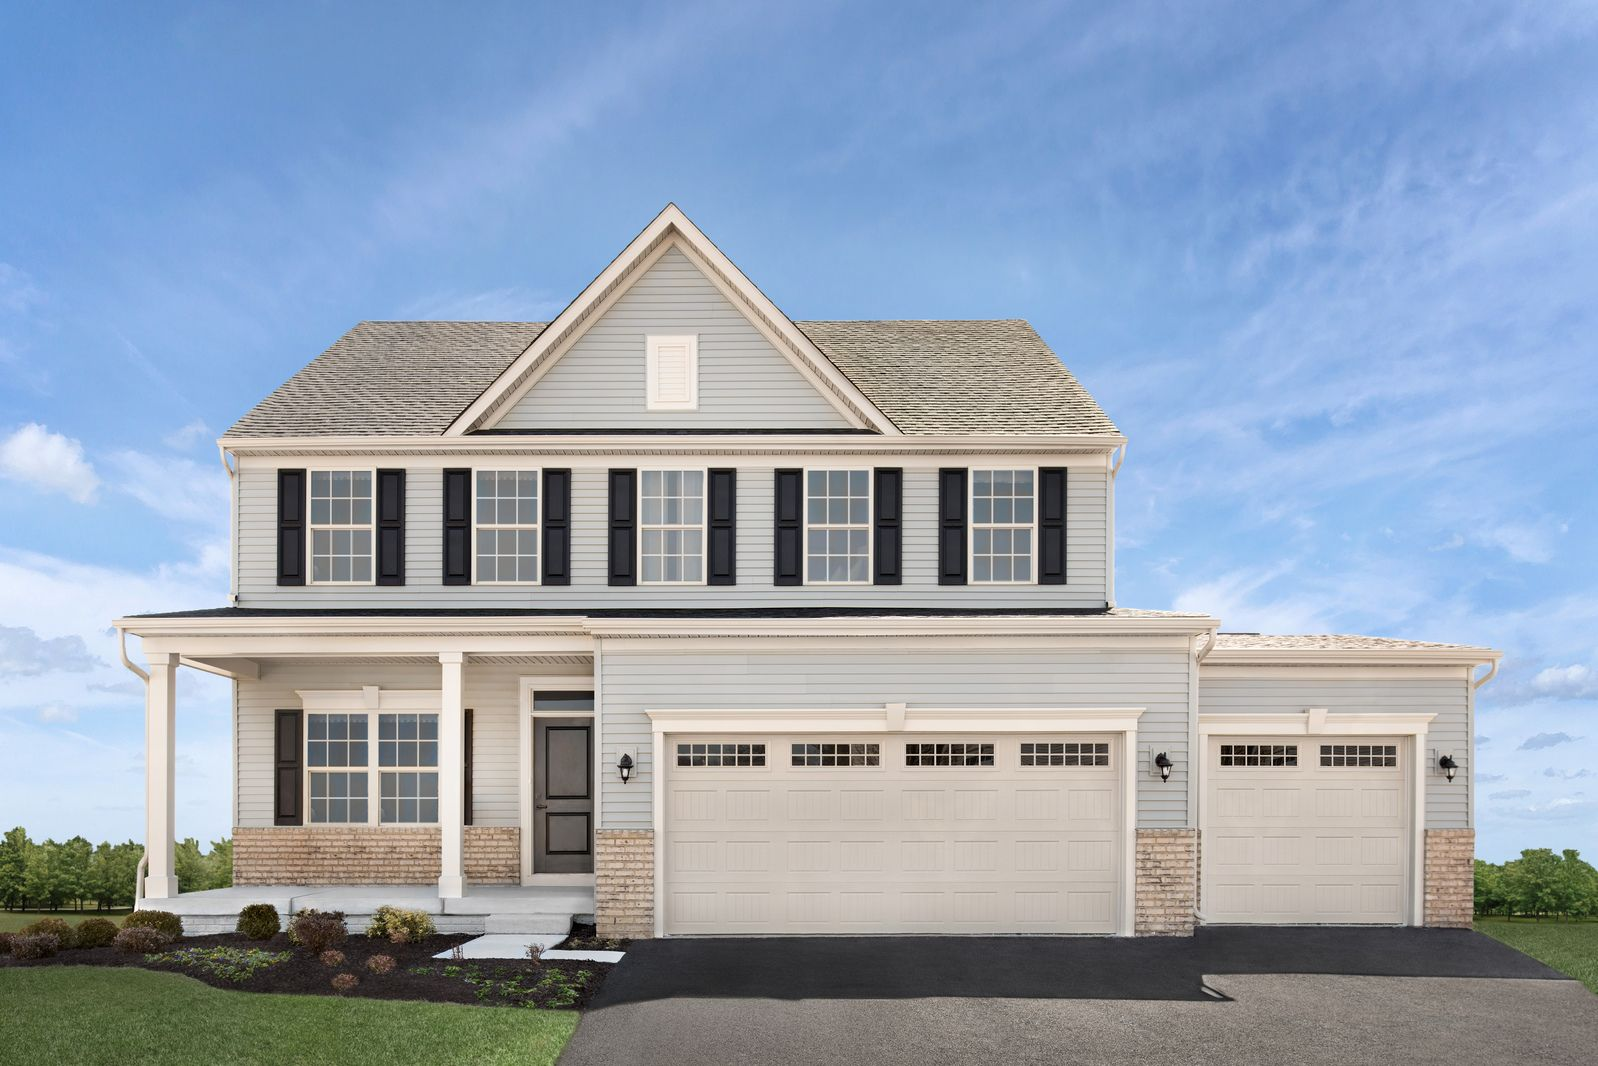 WELCOME TO BROOKFIELD IN EMMITSBURG, MD:Move up and get more for your money at Brookfield!Offering affordable new Single Family Homes on 1/4-1/2 acre homesites.Schedule your appointment today.